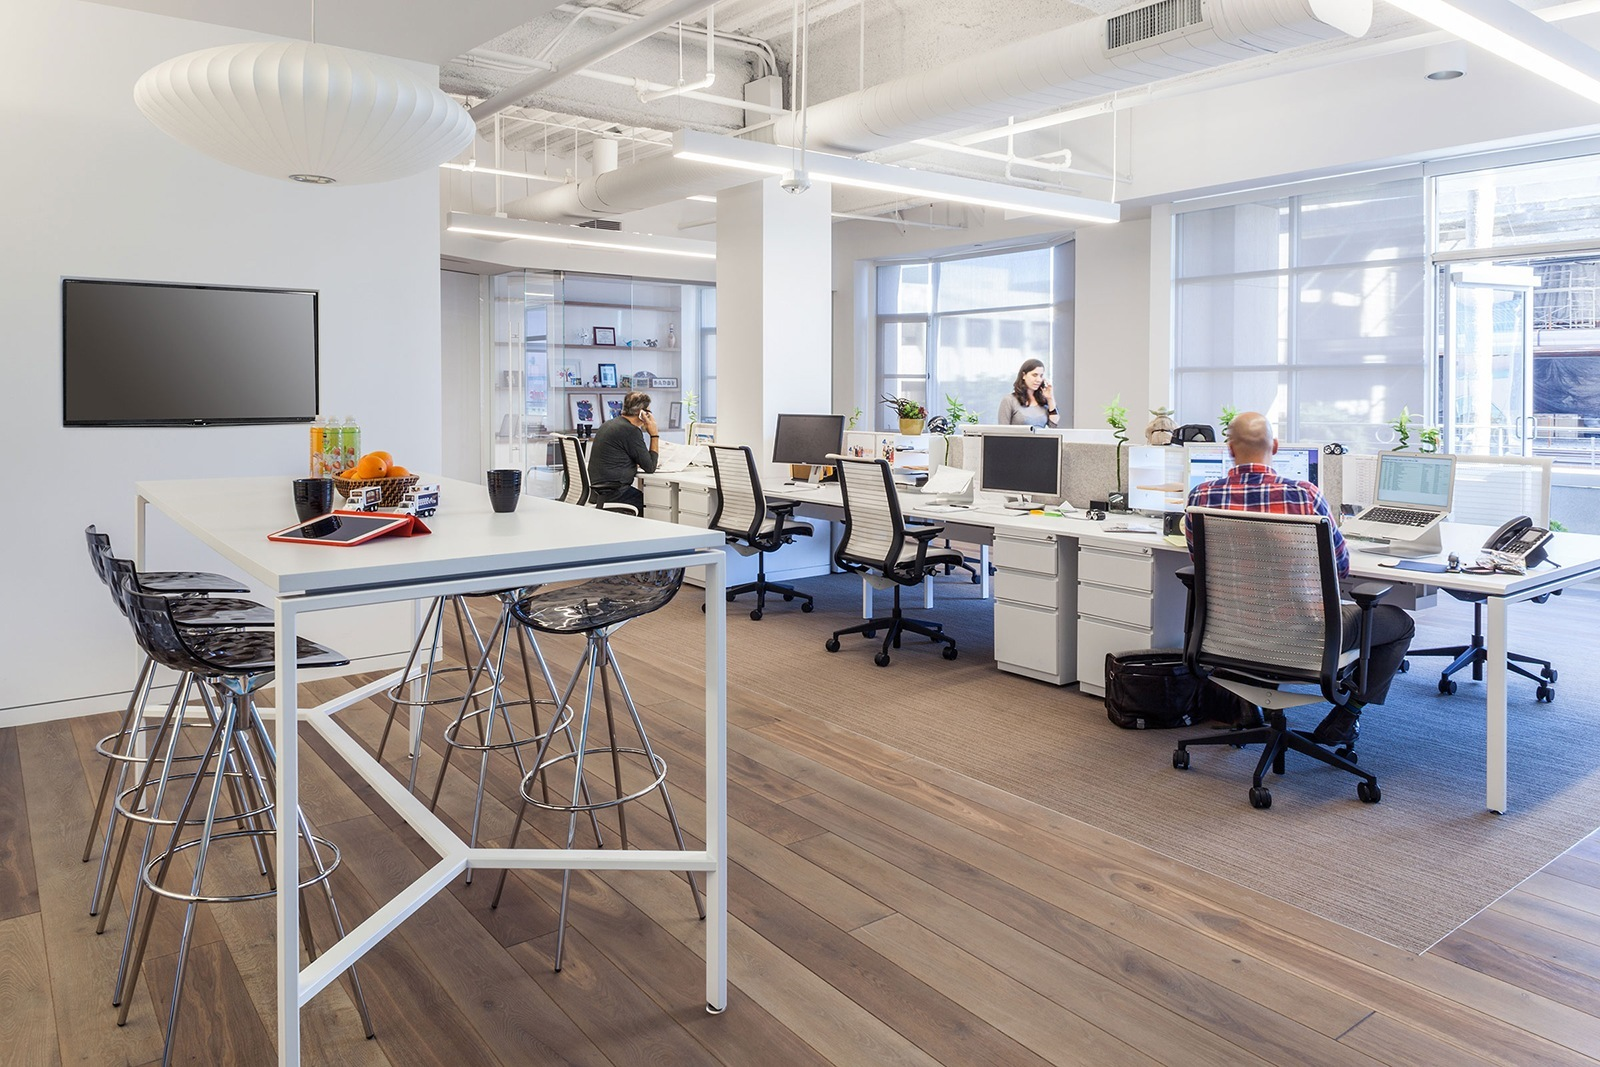 A Look Inside Tsn Advertising S Elegant Santa Monica Office Officelovin 39